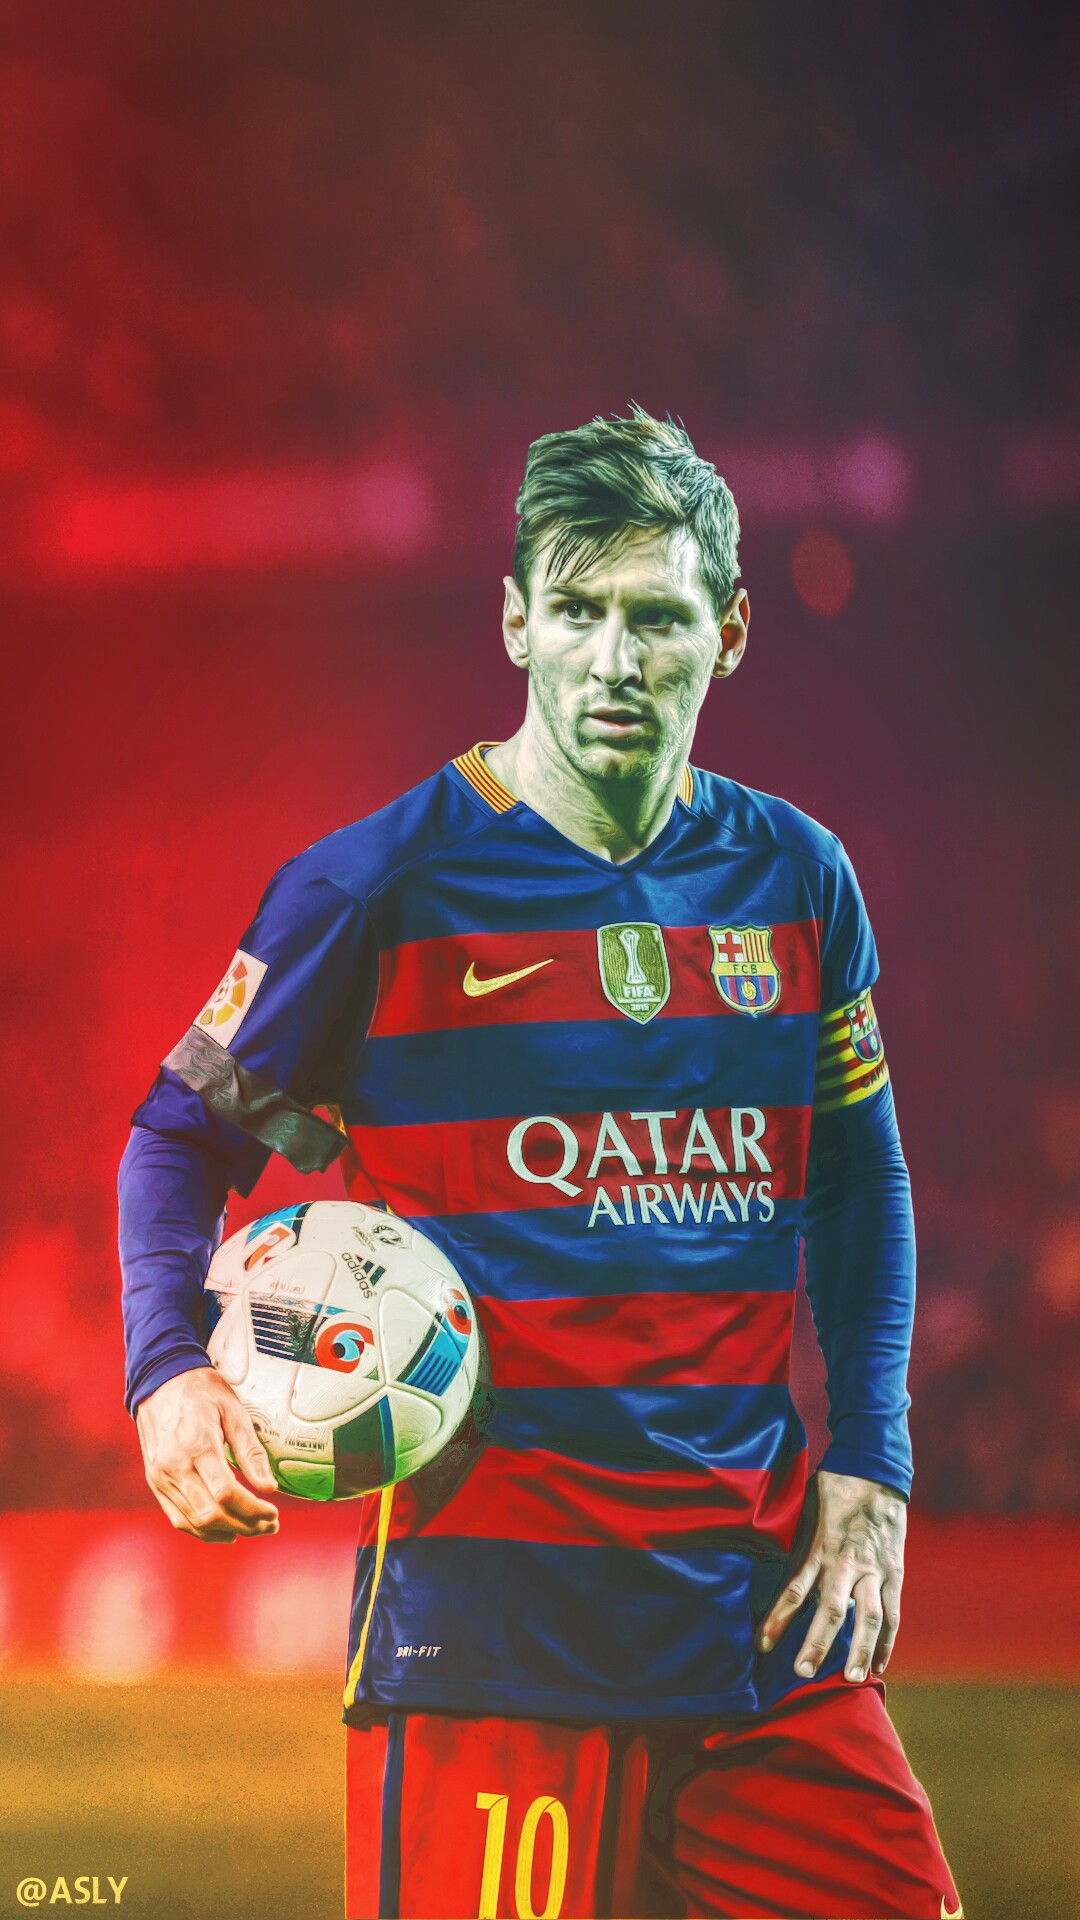 Messi And Neymar Wallpaper Downloadwallpaper Org